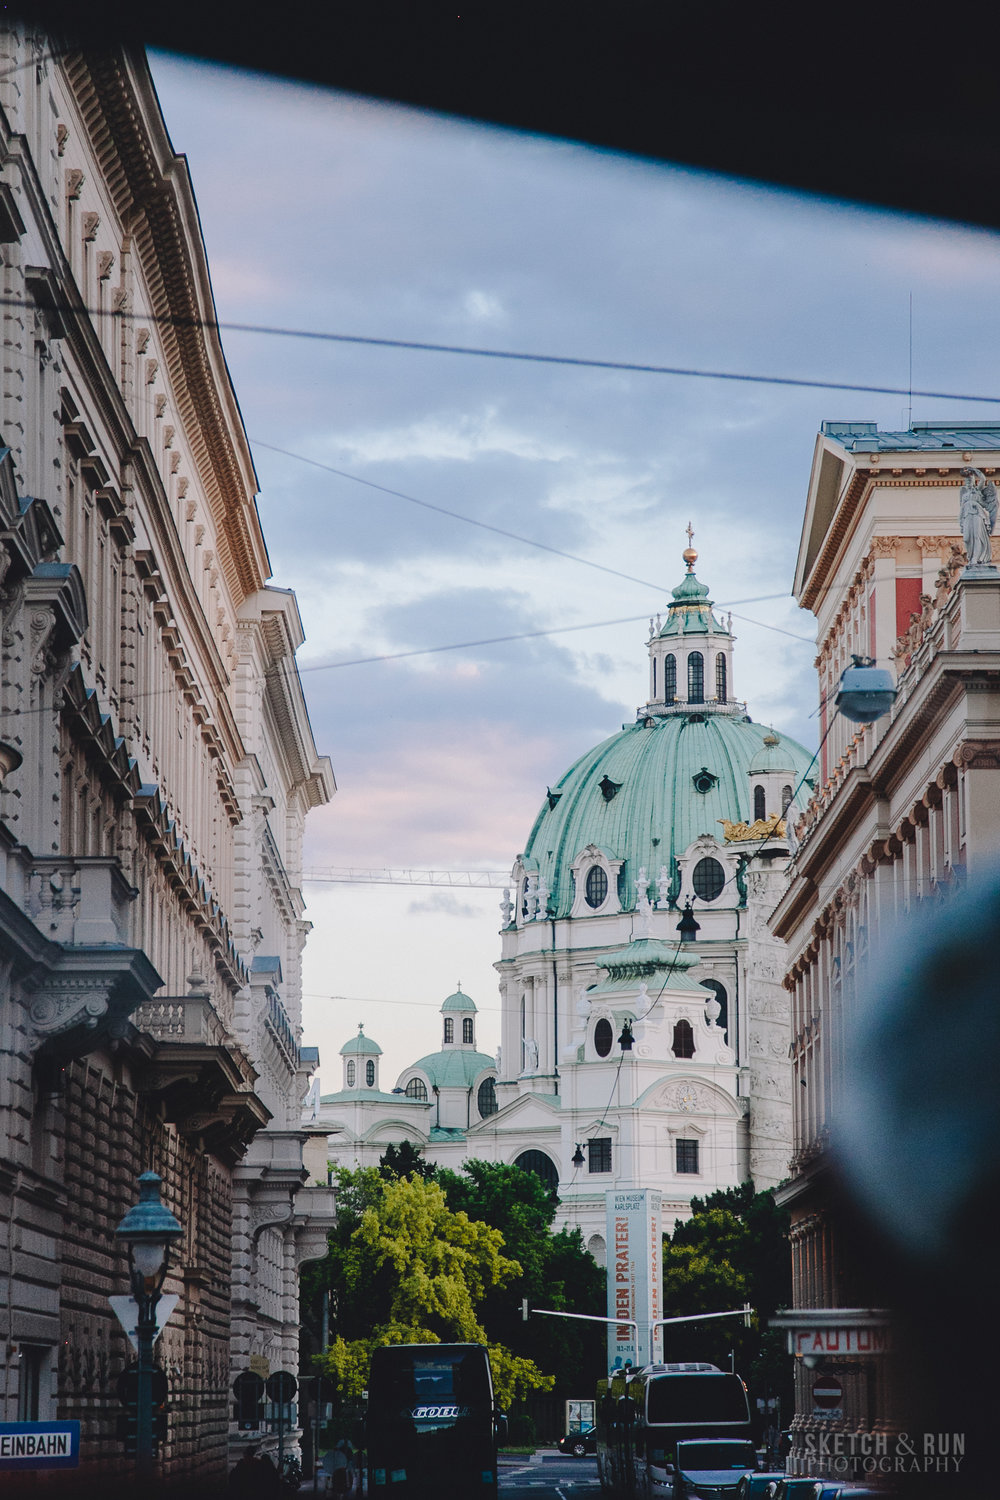 Vienna, Austria, teal dome, street photography